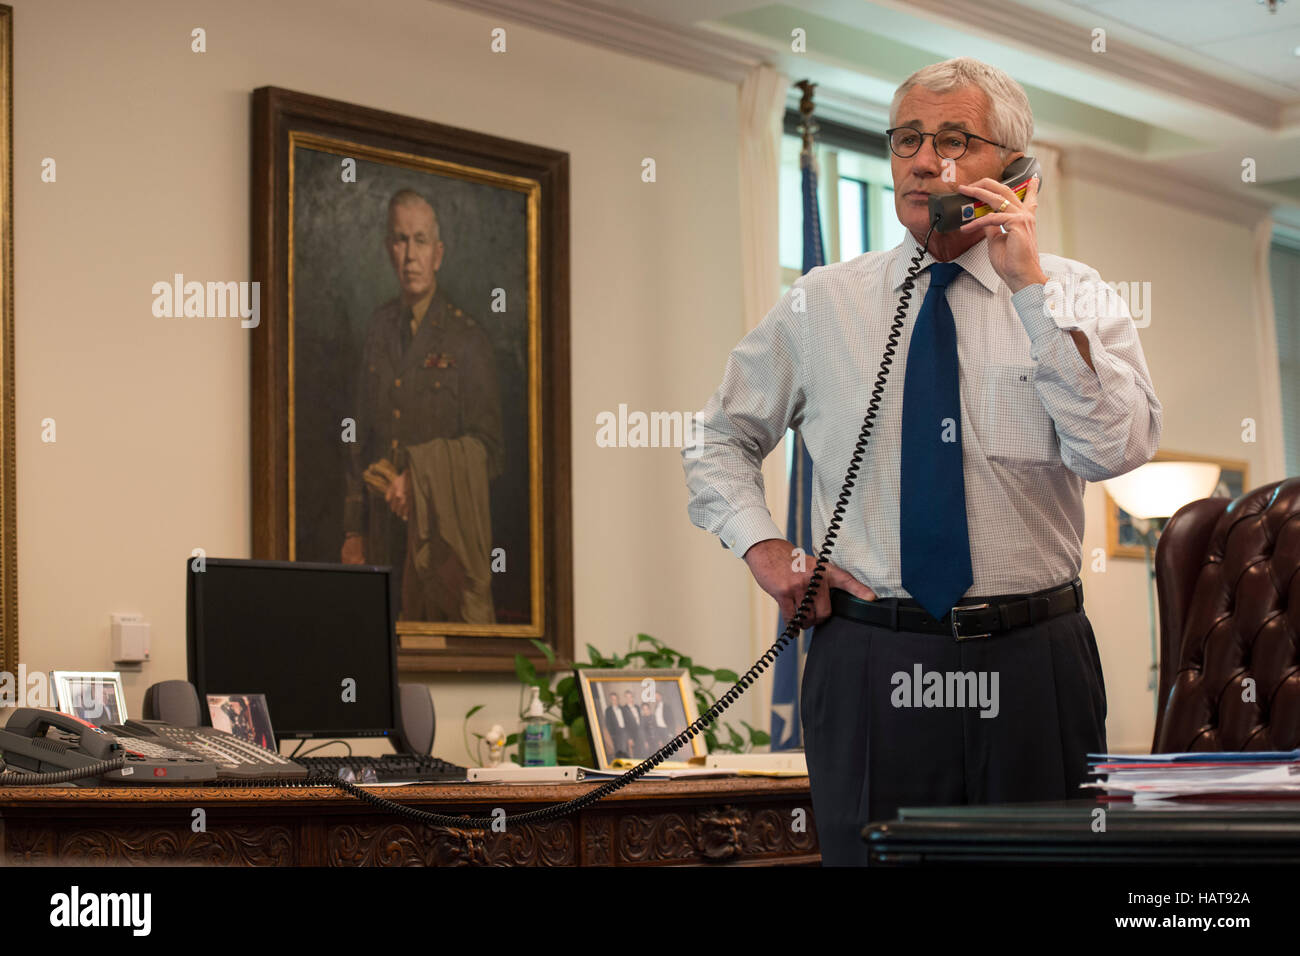 U.S. Secretary of Defense Chuck Hagel talks on the phone in his office at the Pentagon August 18, 2014 in Washington, - Stock Image